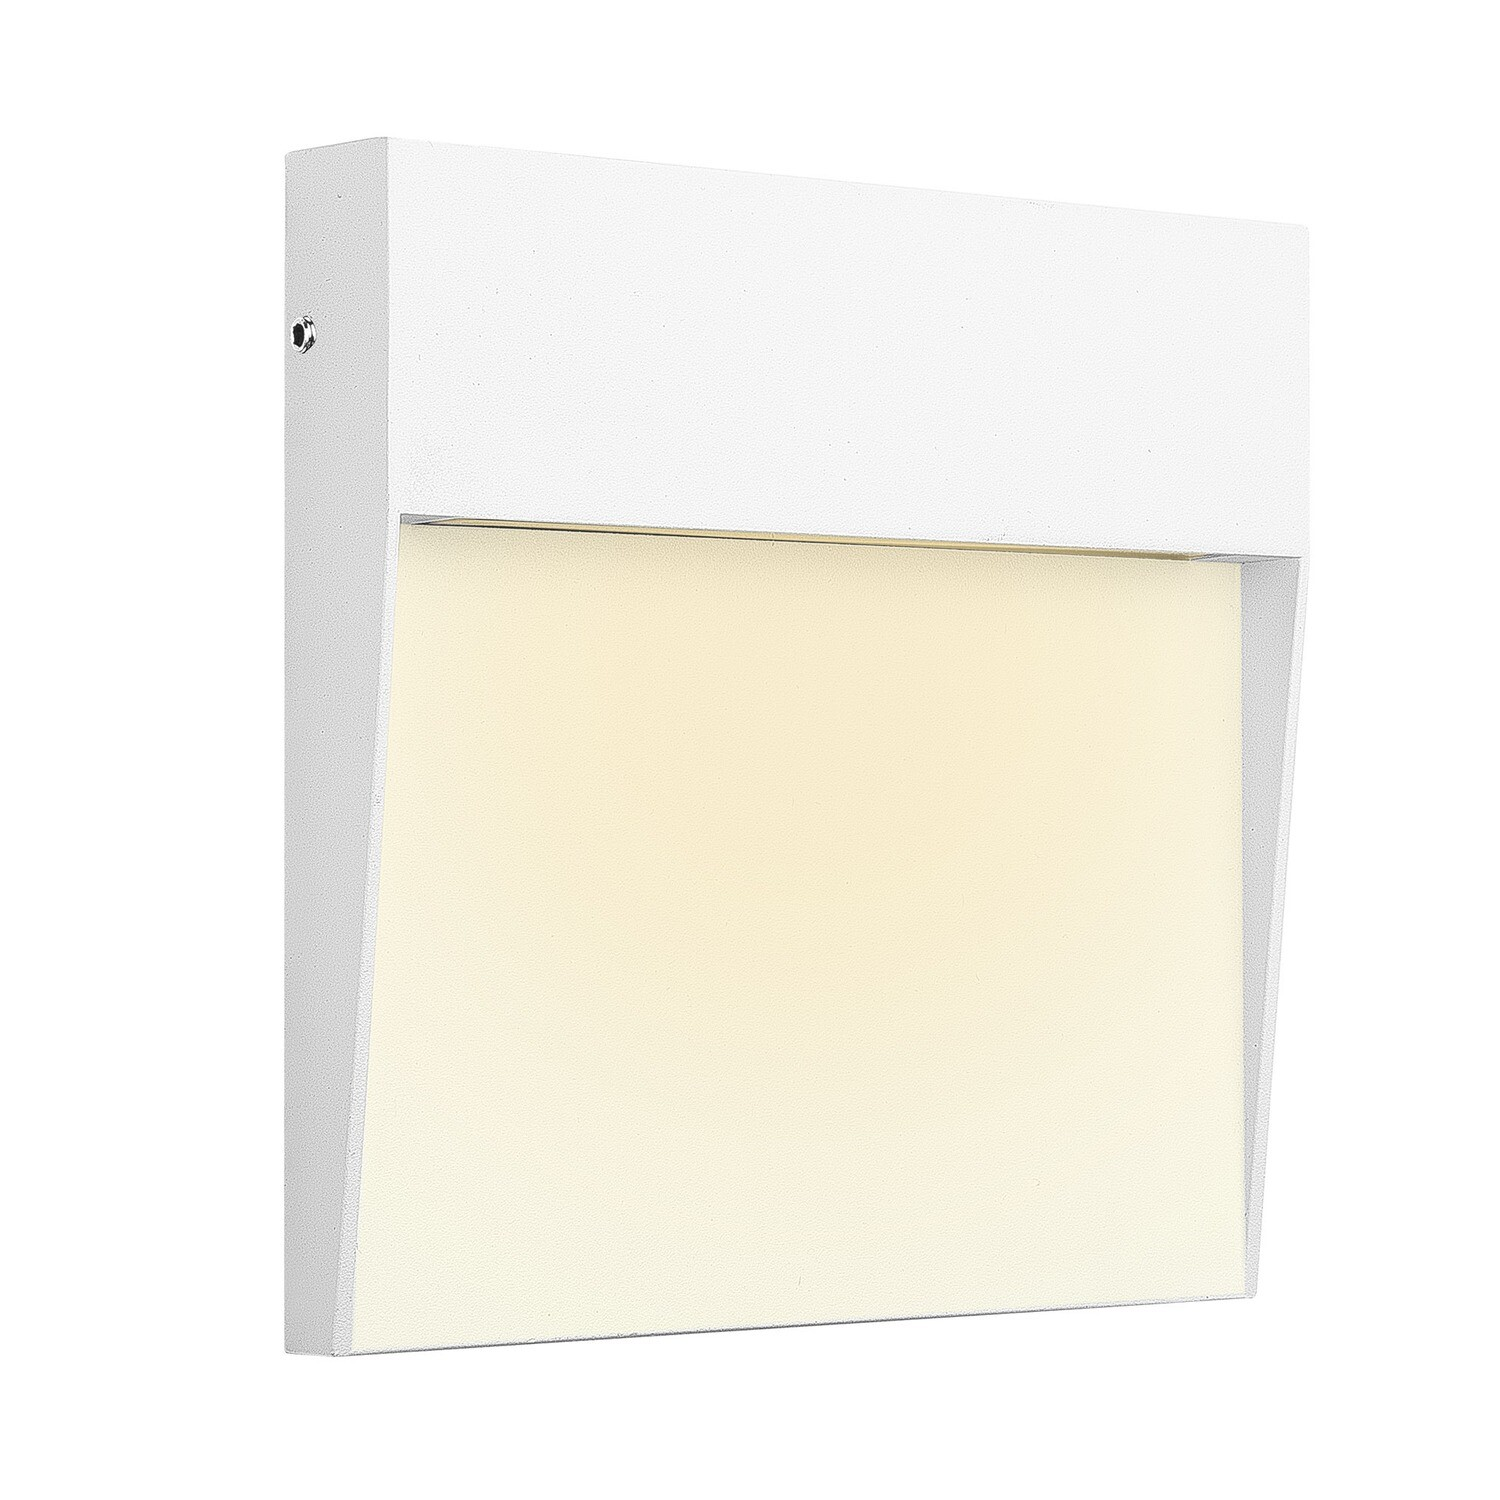 Baker Wall Lamp Large Square, 6W LED, 3000K, 266lm, IP54, White